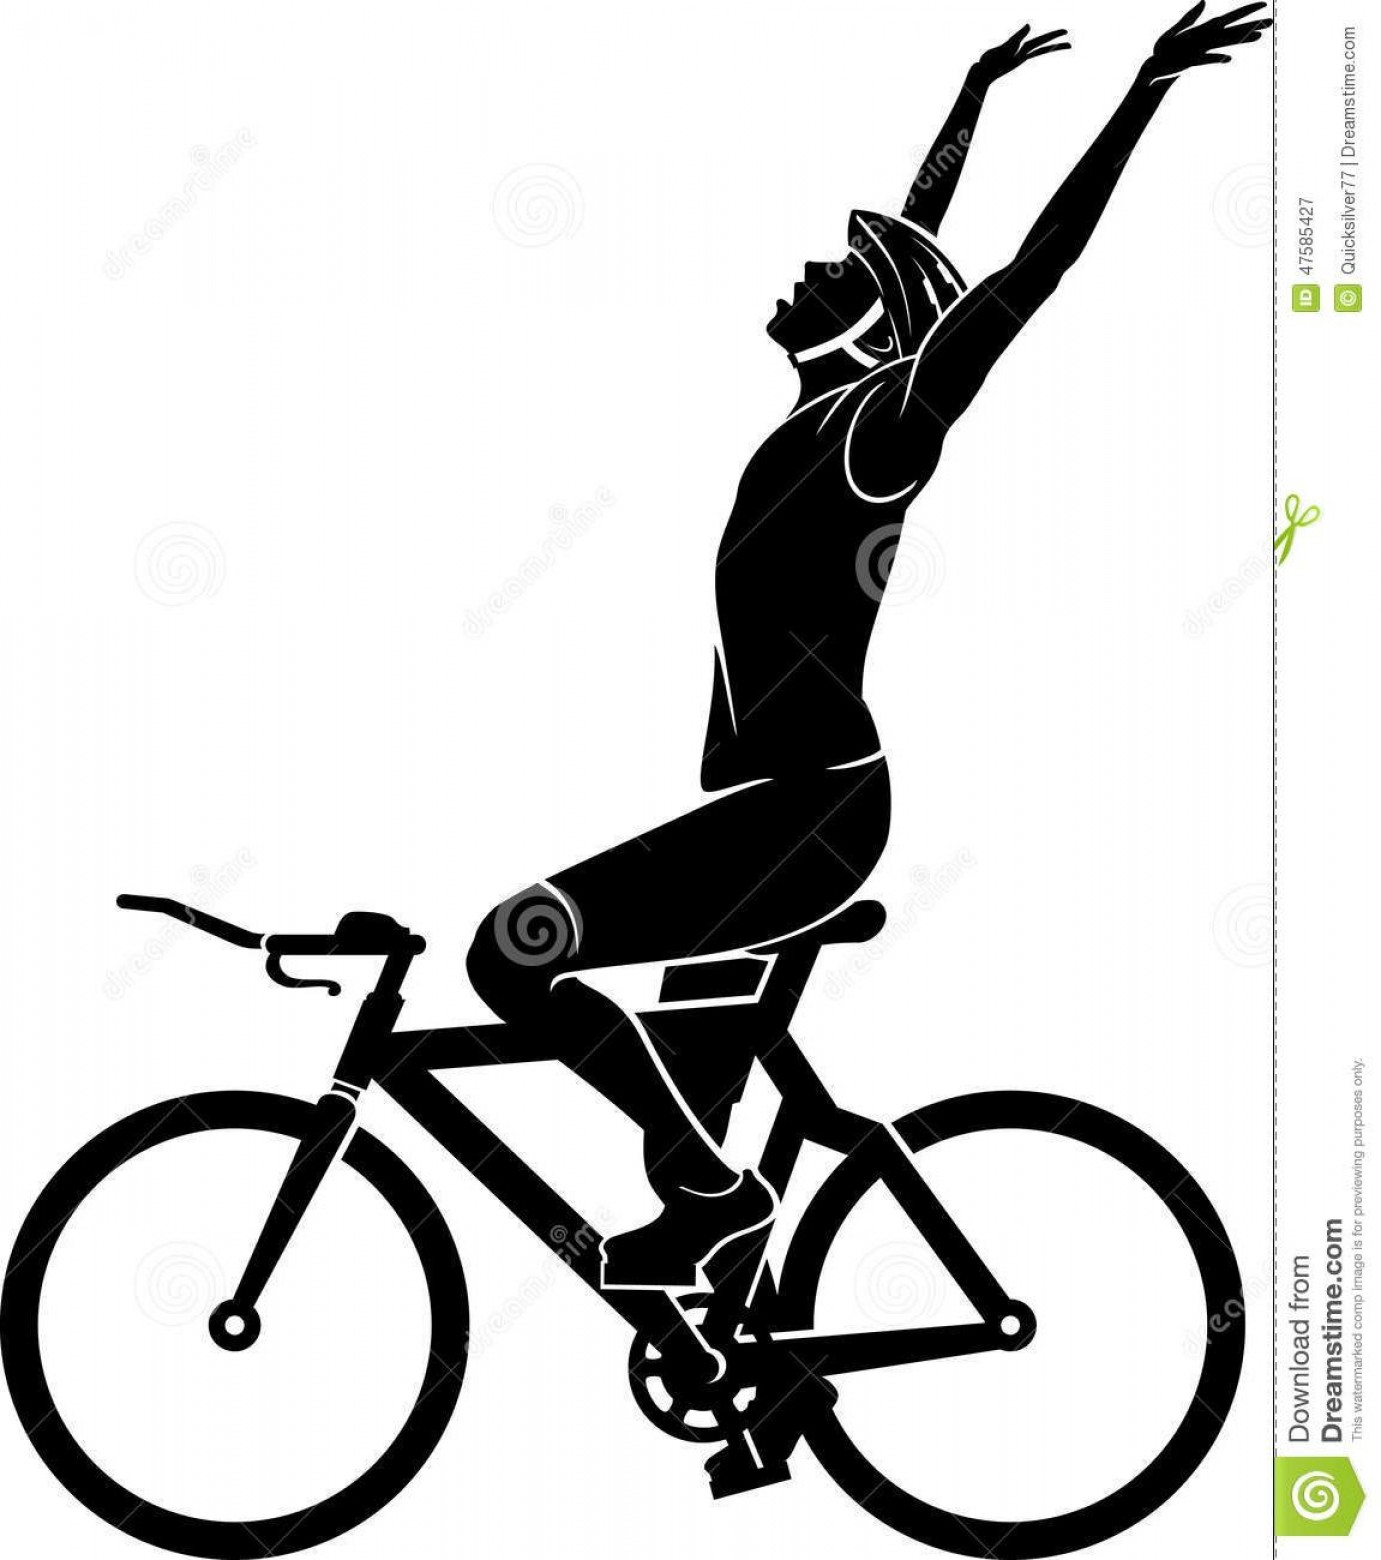 1381x1560 Best Winning Male Cyclist Silhouette Bicycle Rider Form Drawing